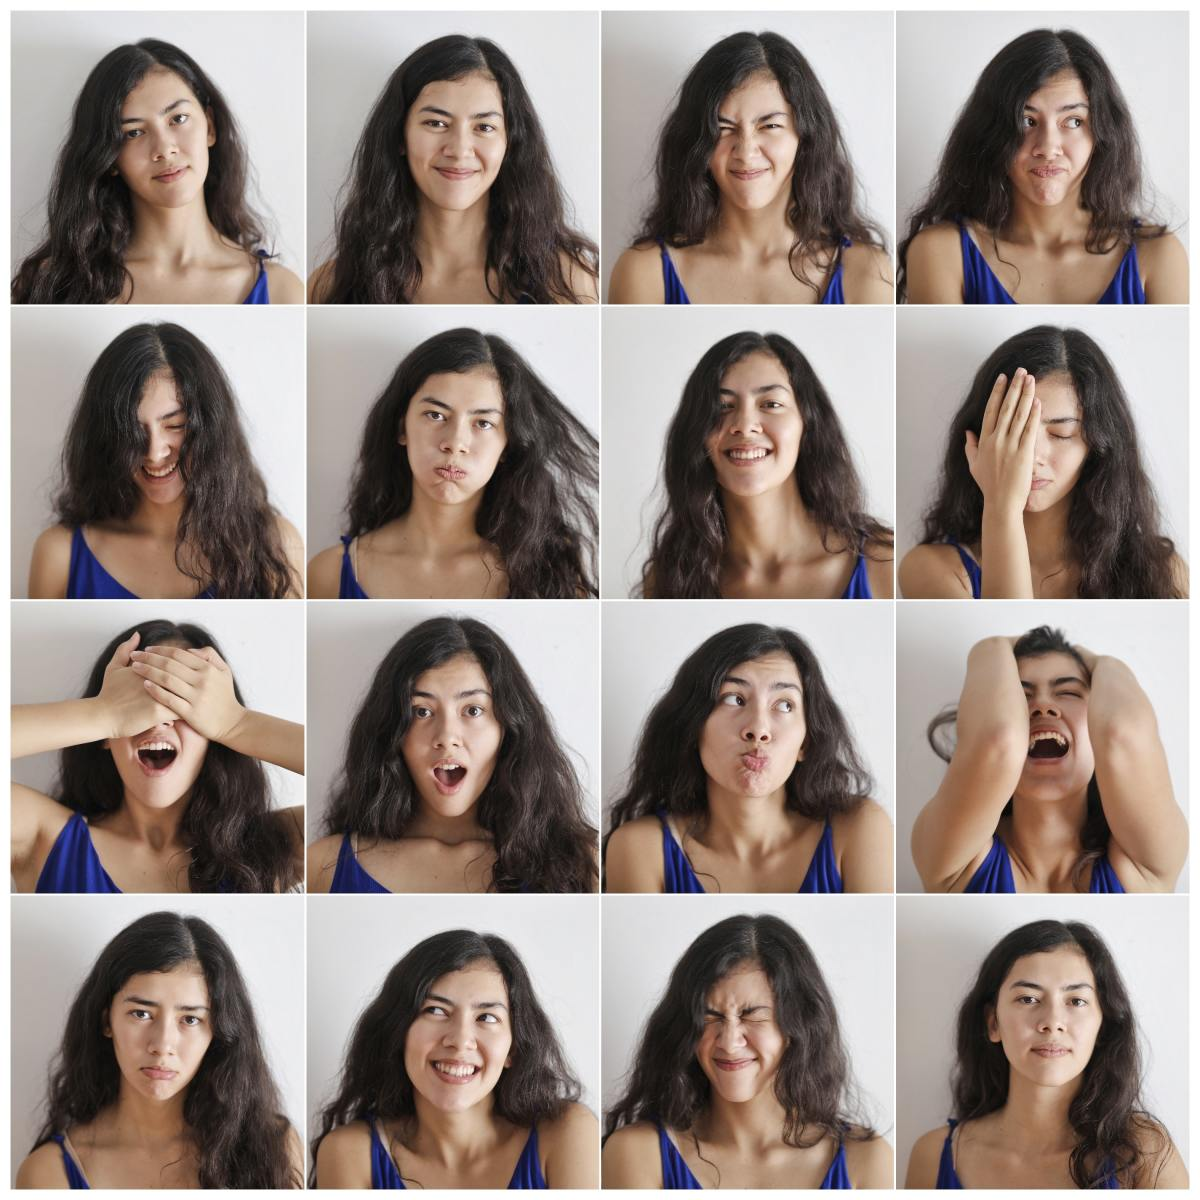 Control Your Emotions - Stress Management